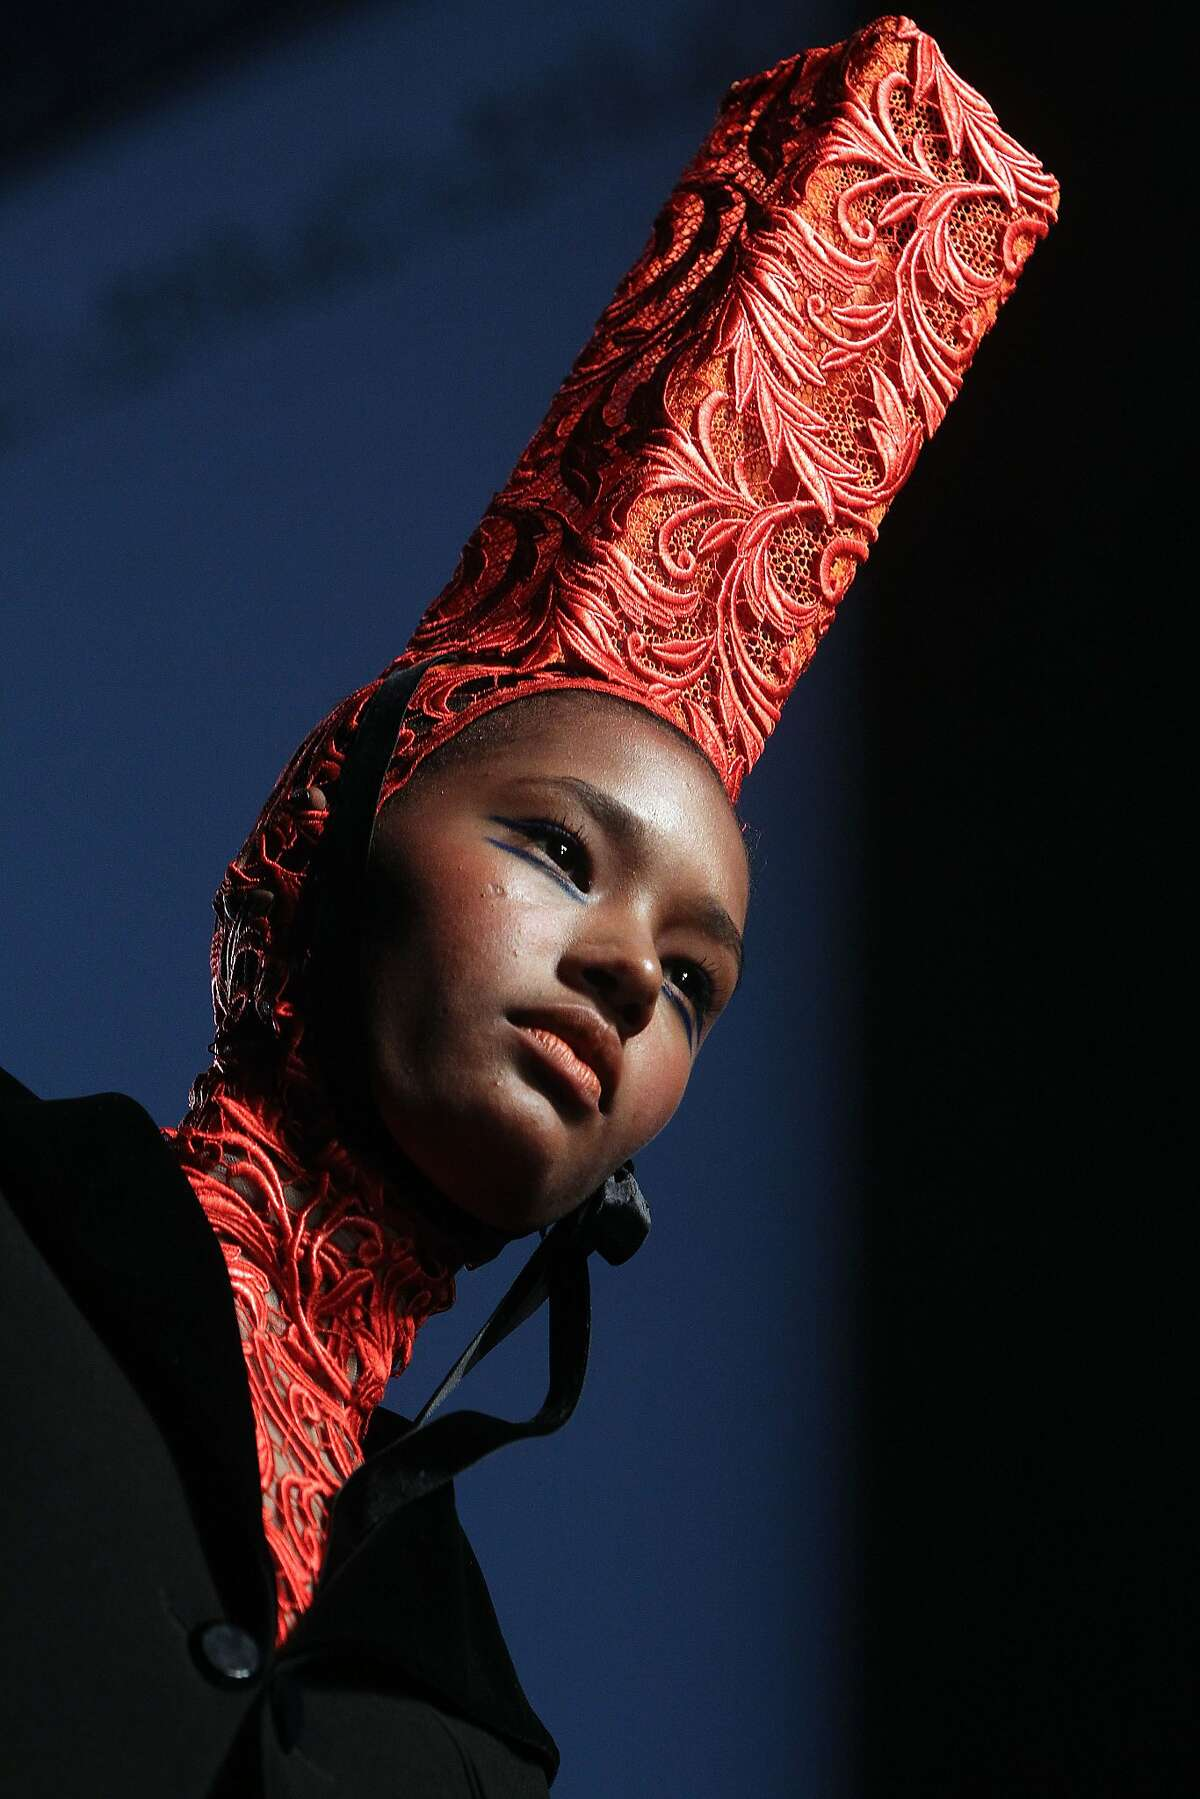 A model wears a creation for Jean-Paul Gaultier's fall-winter 2015/2016 Haute Couture fashion collection presented in Paris, France, Wednesday, July 8, 2015. (AP Photo/Thibault Camus)